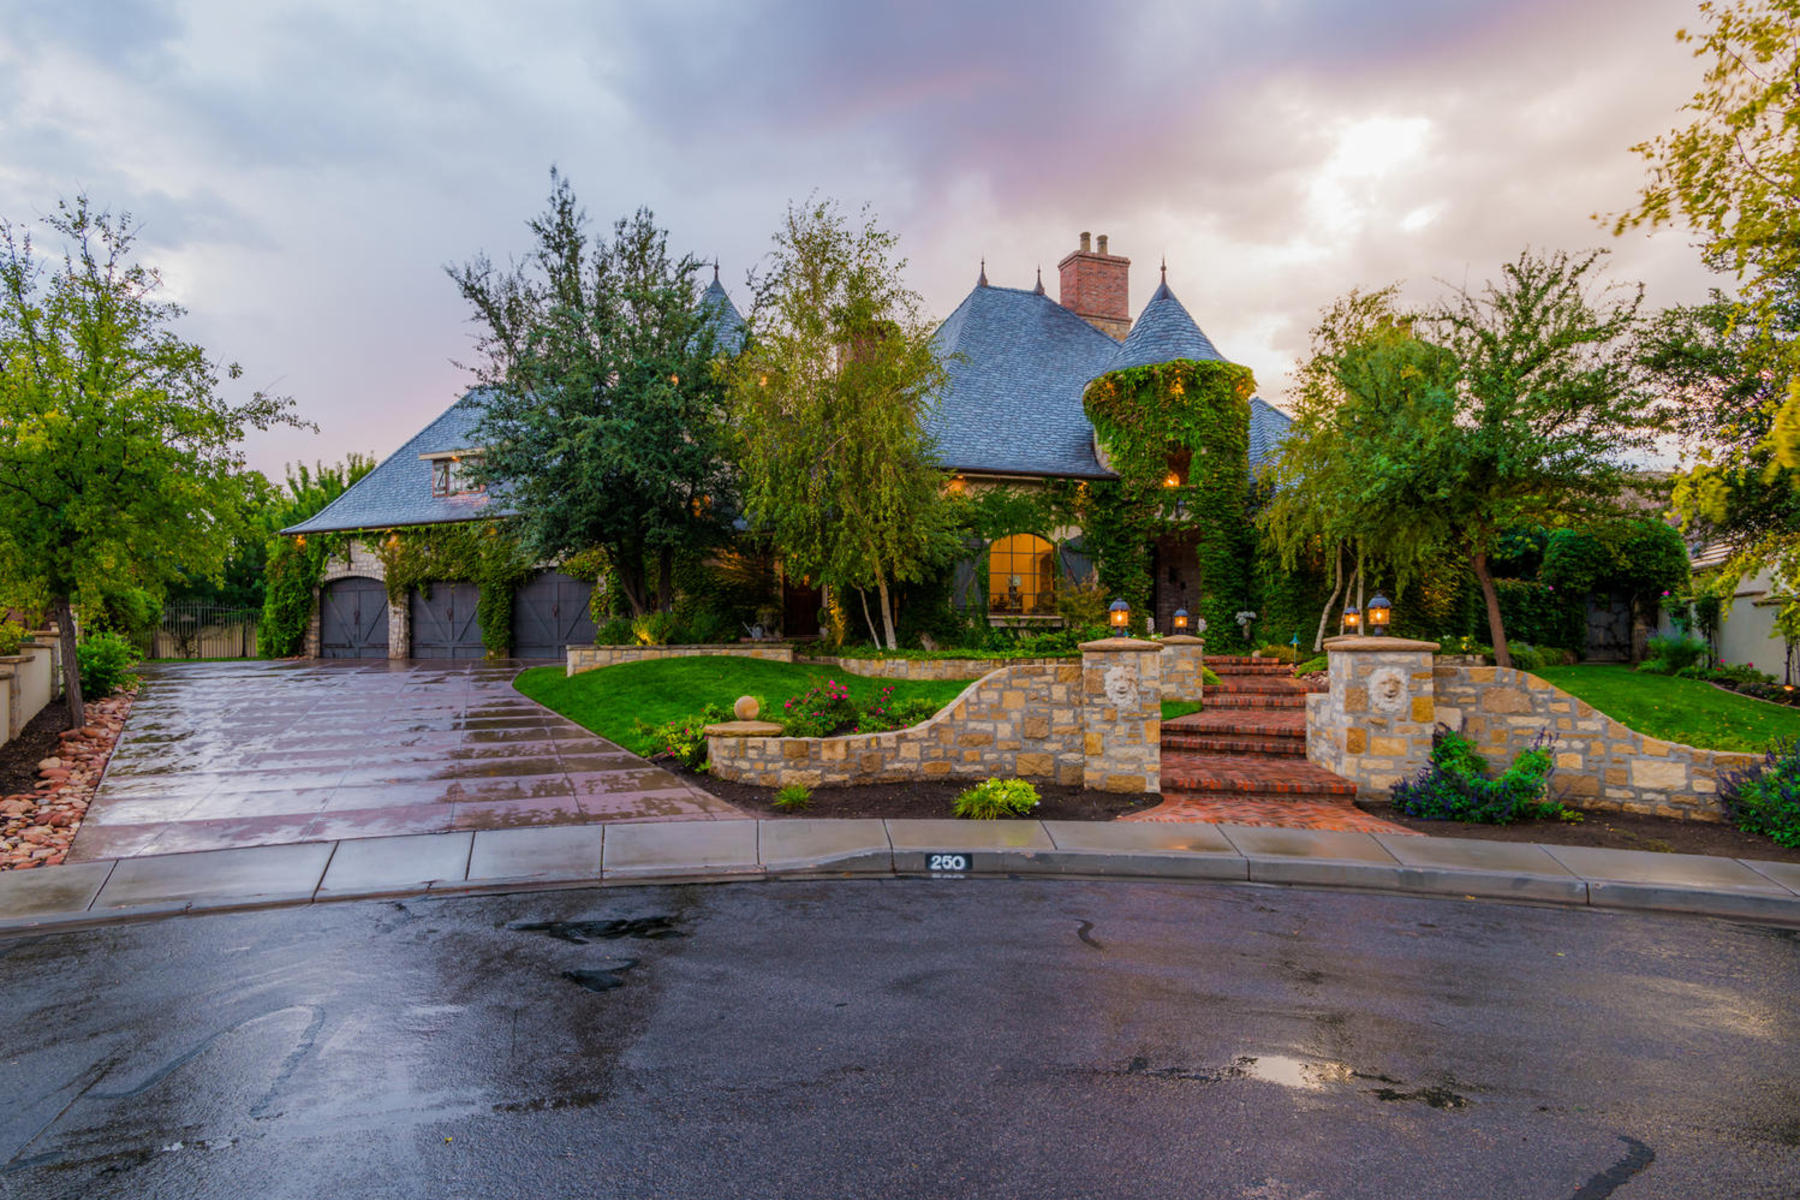 Single Family Home for Sale at Stunning French Country Home 250 Le Grande Cir Santa Clara, Utah 84765 United States